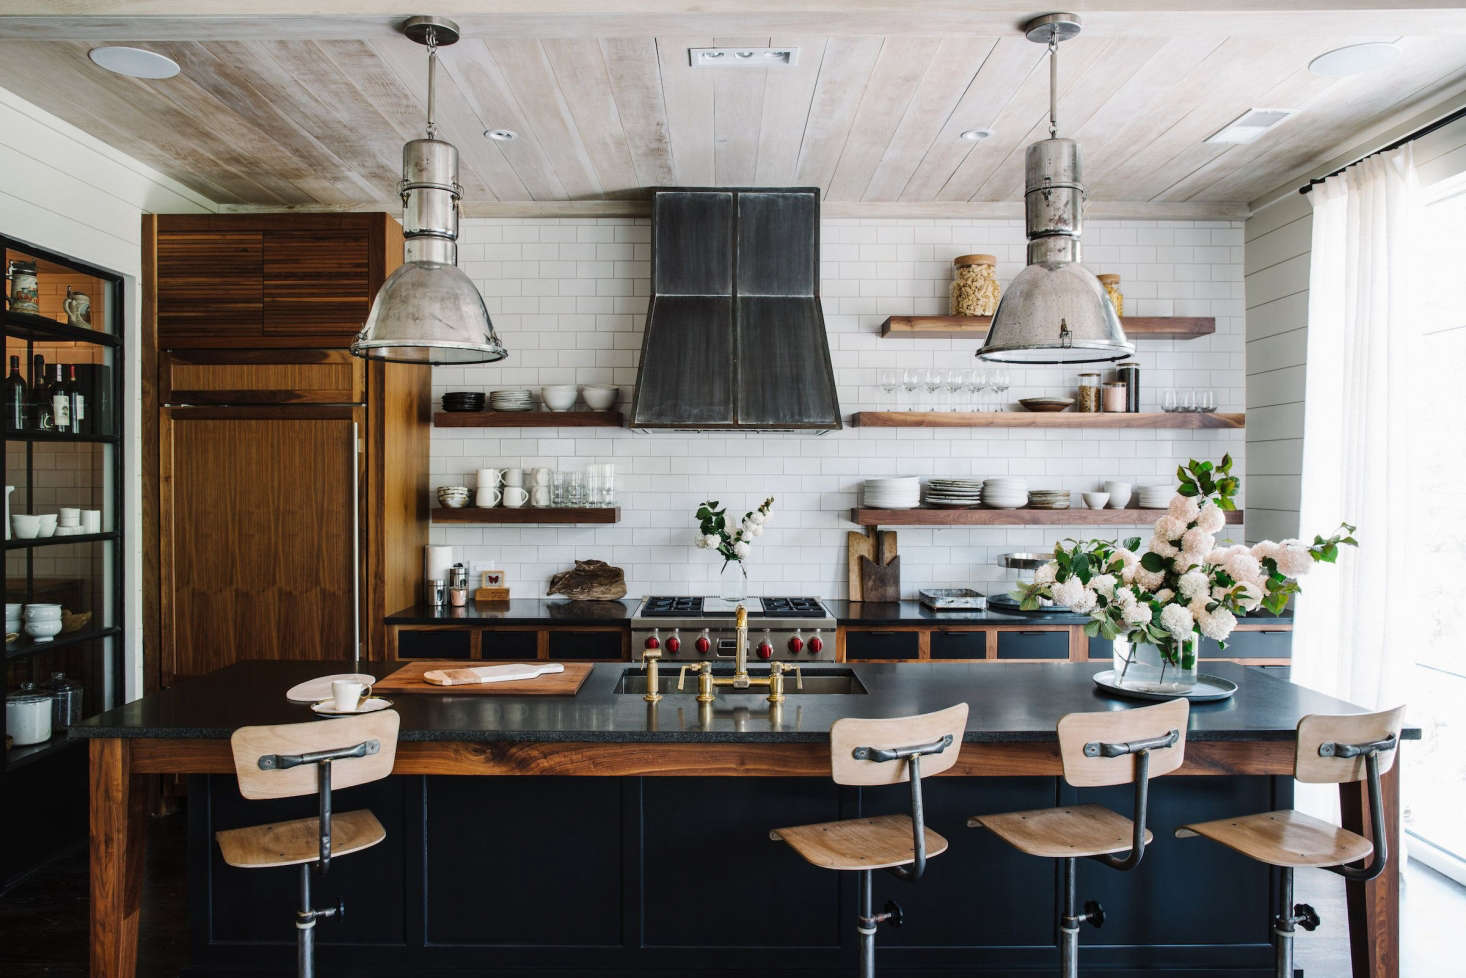 Two restored, vintage factory lights hang above the central island. The island stools are repurposed vintage schoolhouse chairs.